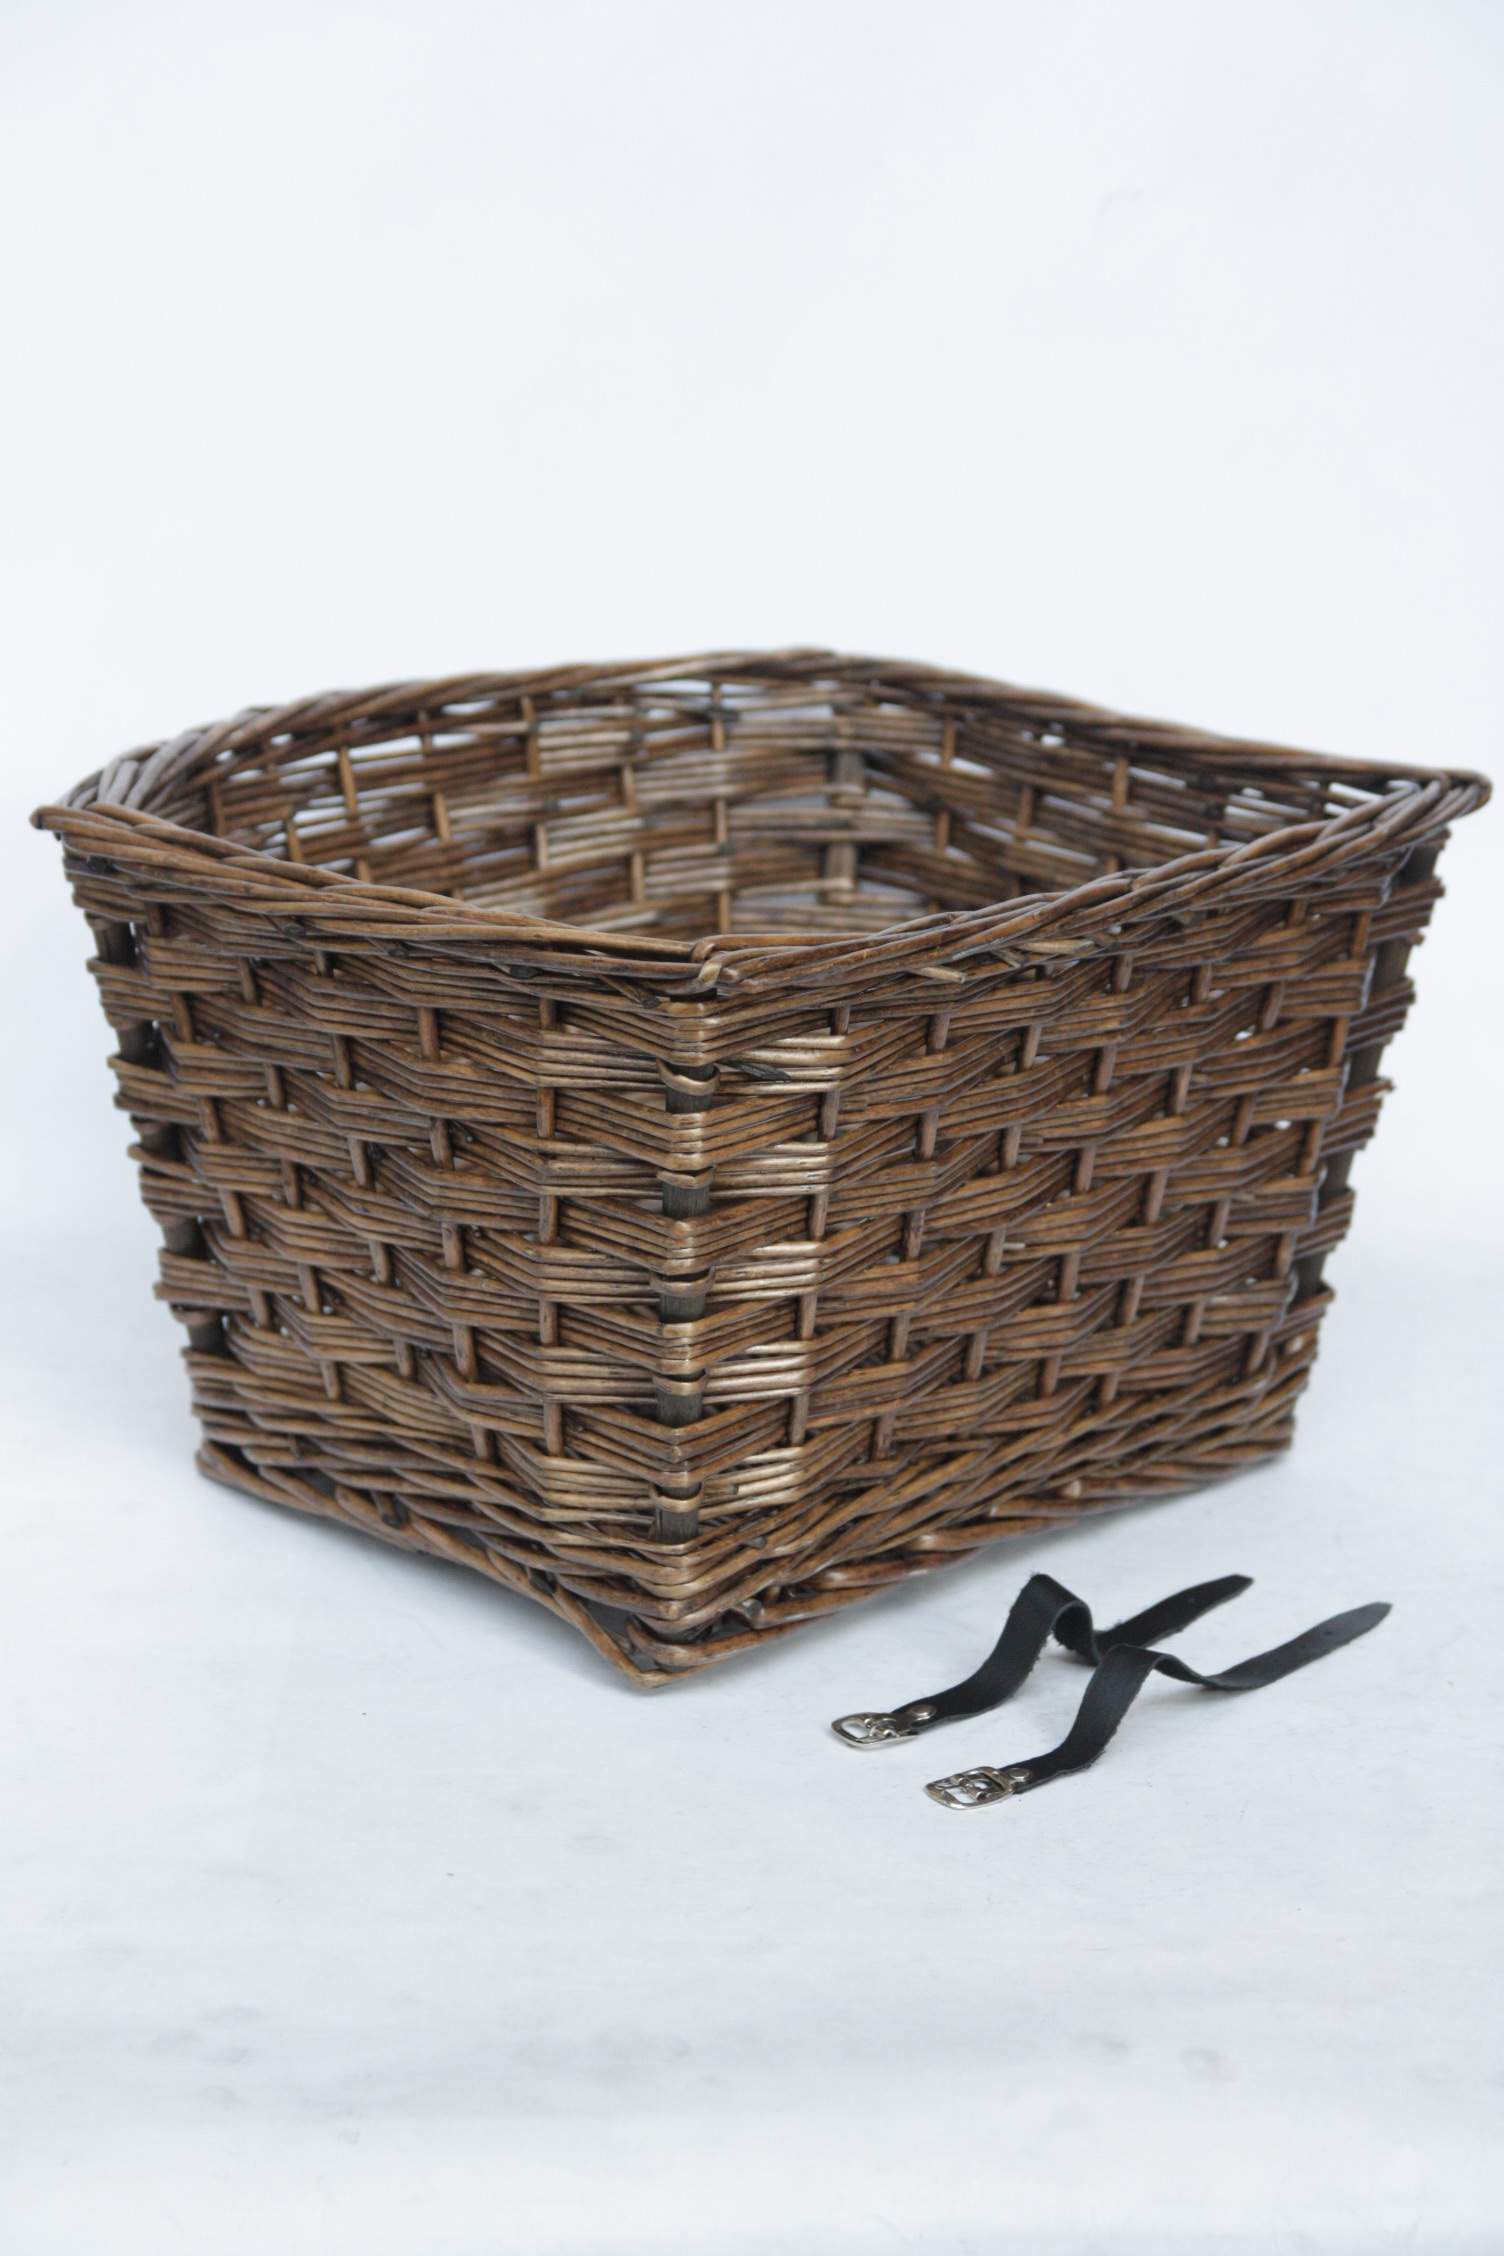 Gazelle Wicker Basket Msgrace with Assembly Straps - Brown